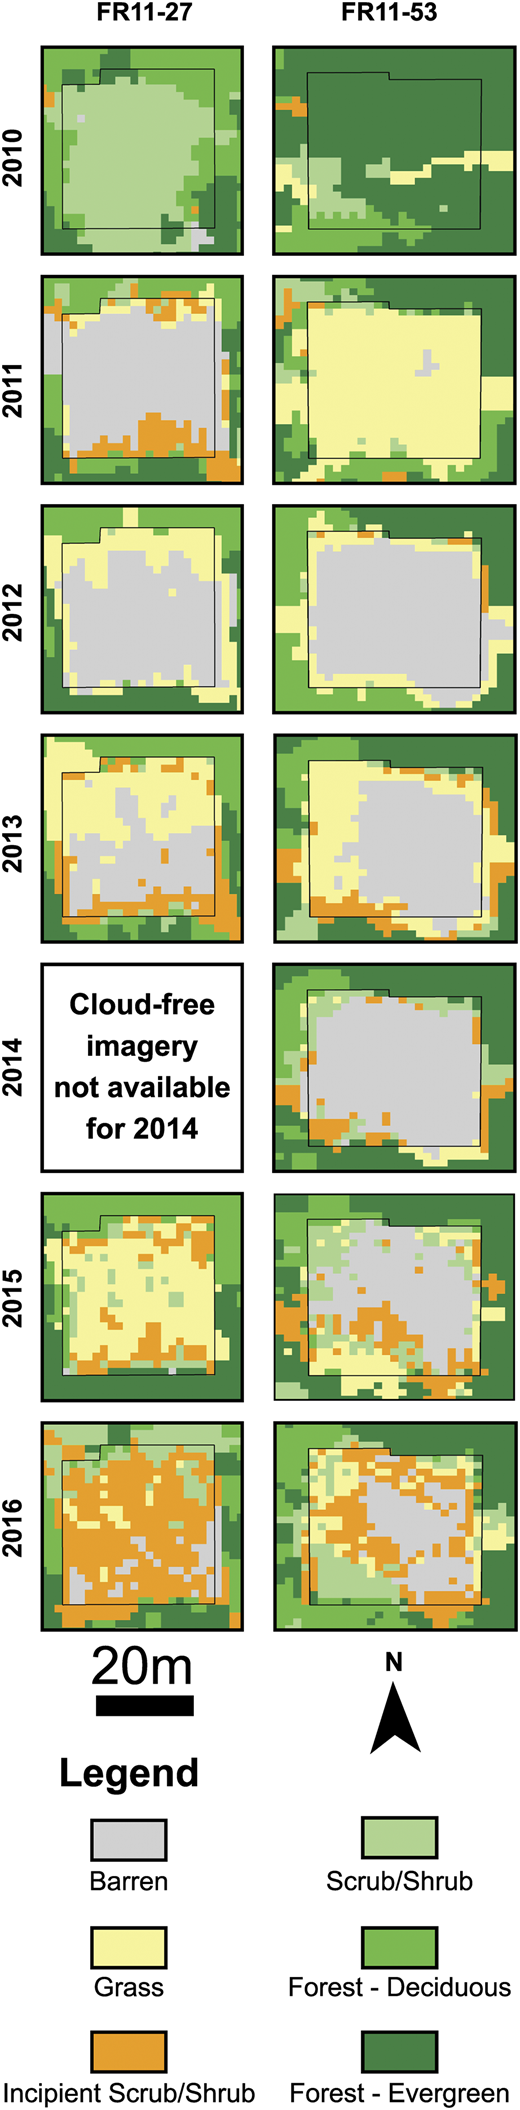 Time-series satellite-derived land-cover classification for two well pads within the Firebag areas of interest. Note that the land-cover legend appears at the bottom of the figure. FR-11-29 (left panels) and FR-11-53 (right panels) are representative relatively rapid and relatively slow revegetation observed across this area of interest, respectively. The 2010 land-cover classification represents the well pads prior to disturbance, 2012 data represent the well pads 2 yr after disturbance, and the 2016 land-cover classification represents the well pads 6 yr after disturbance.